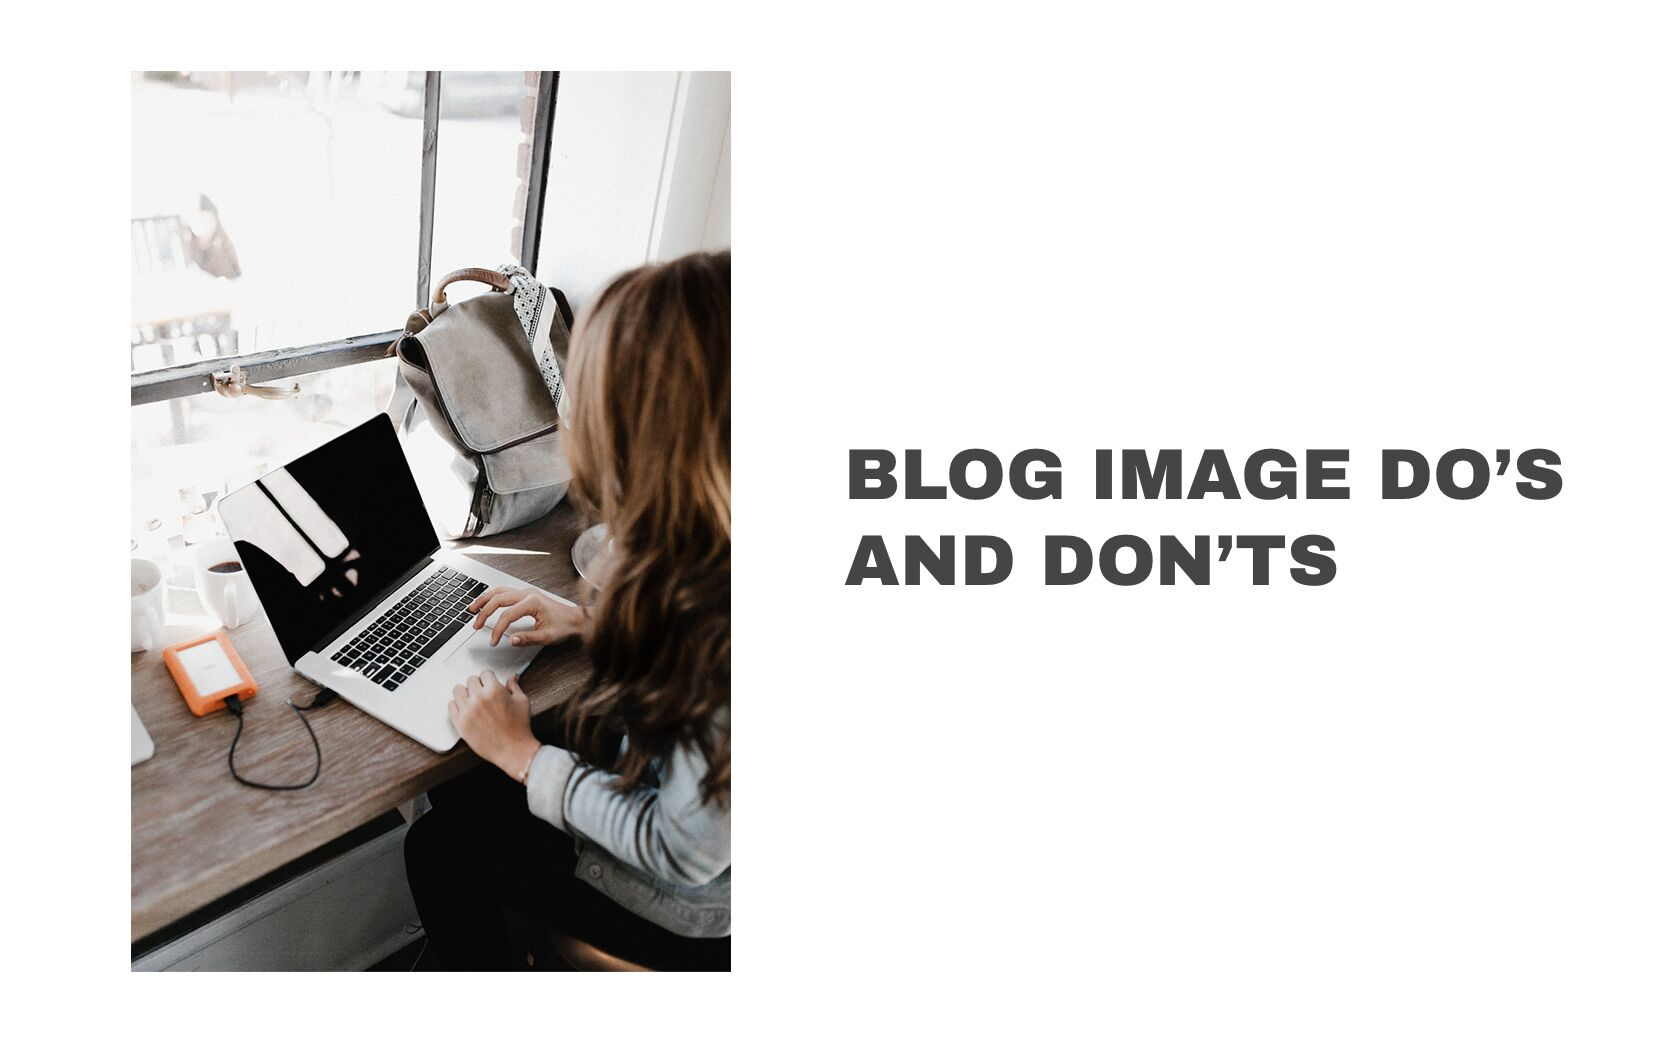 Blog image do's and don'ts